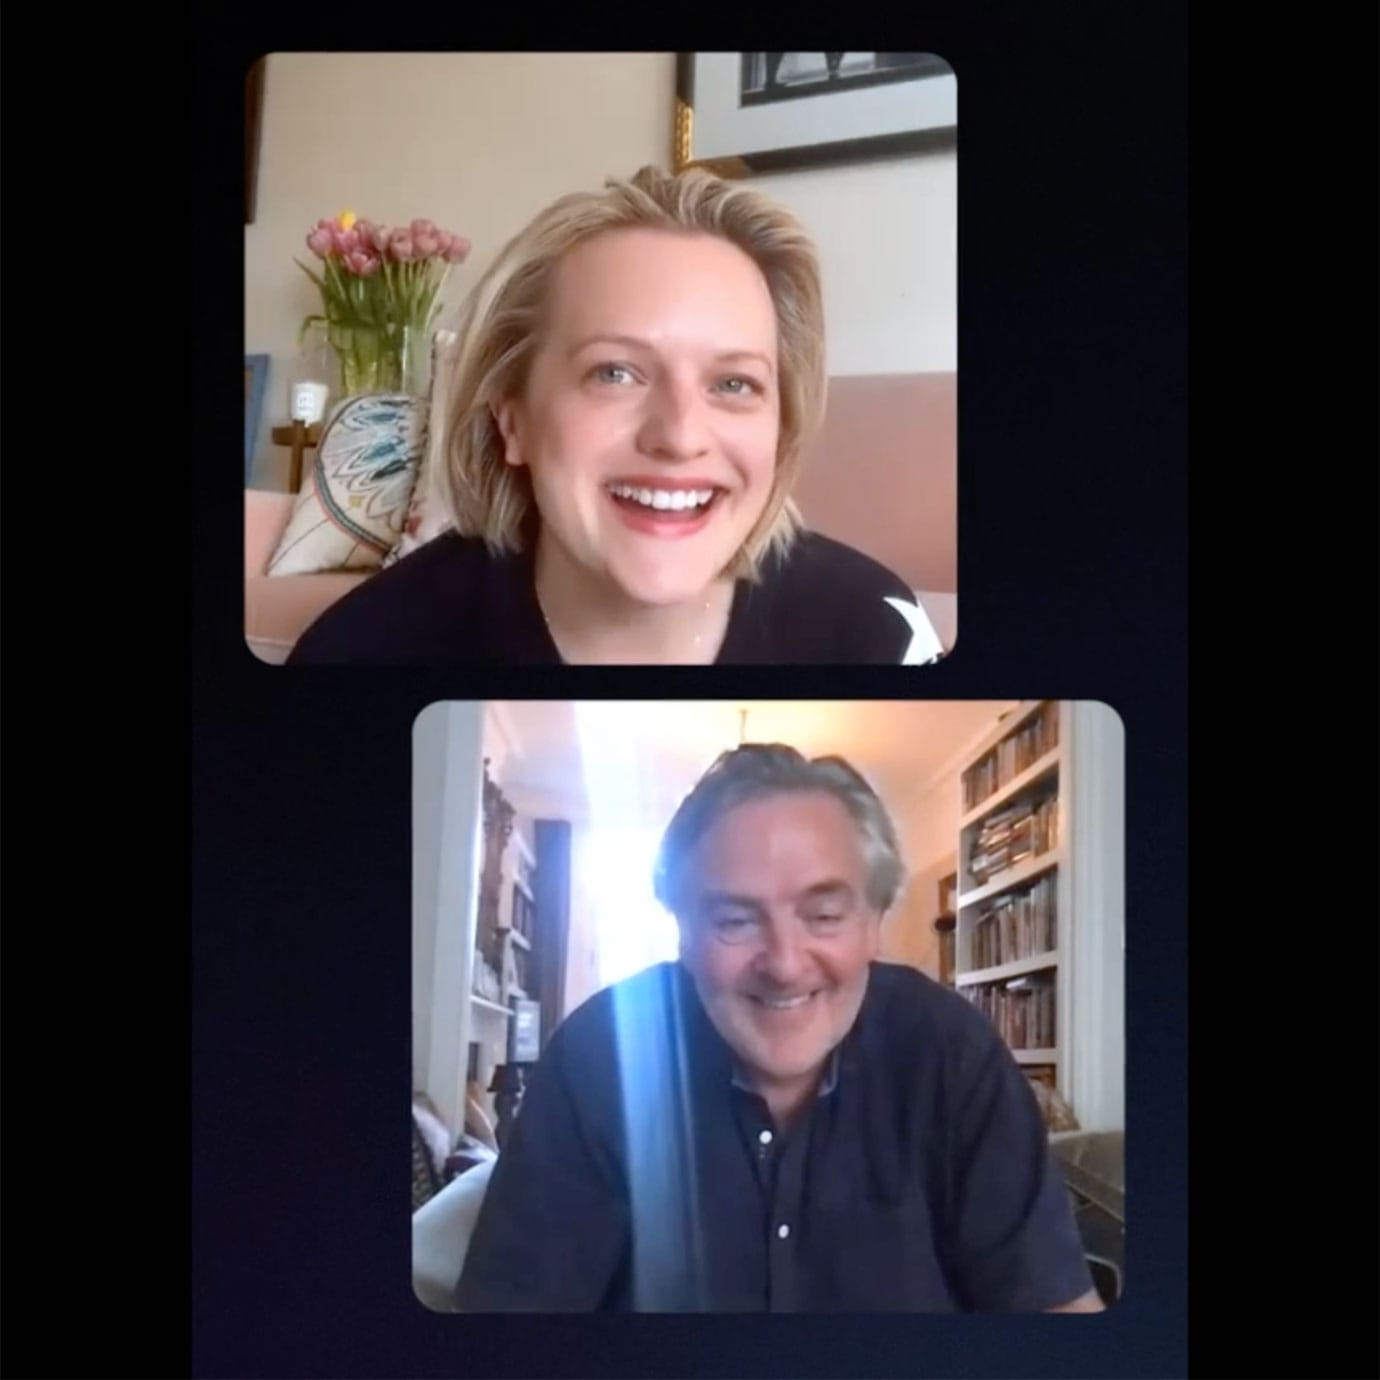 A woman and a man chatting on a video call.